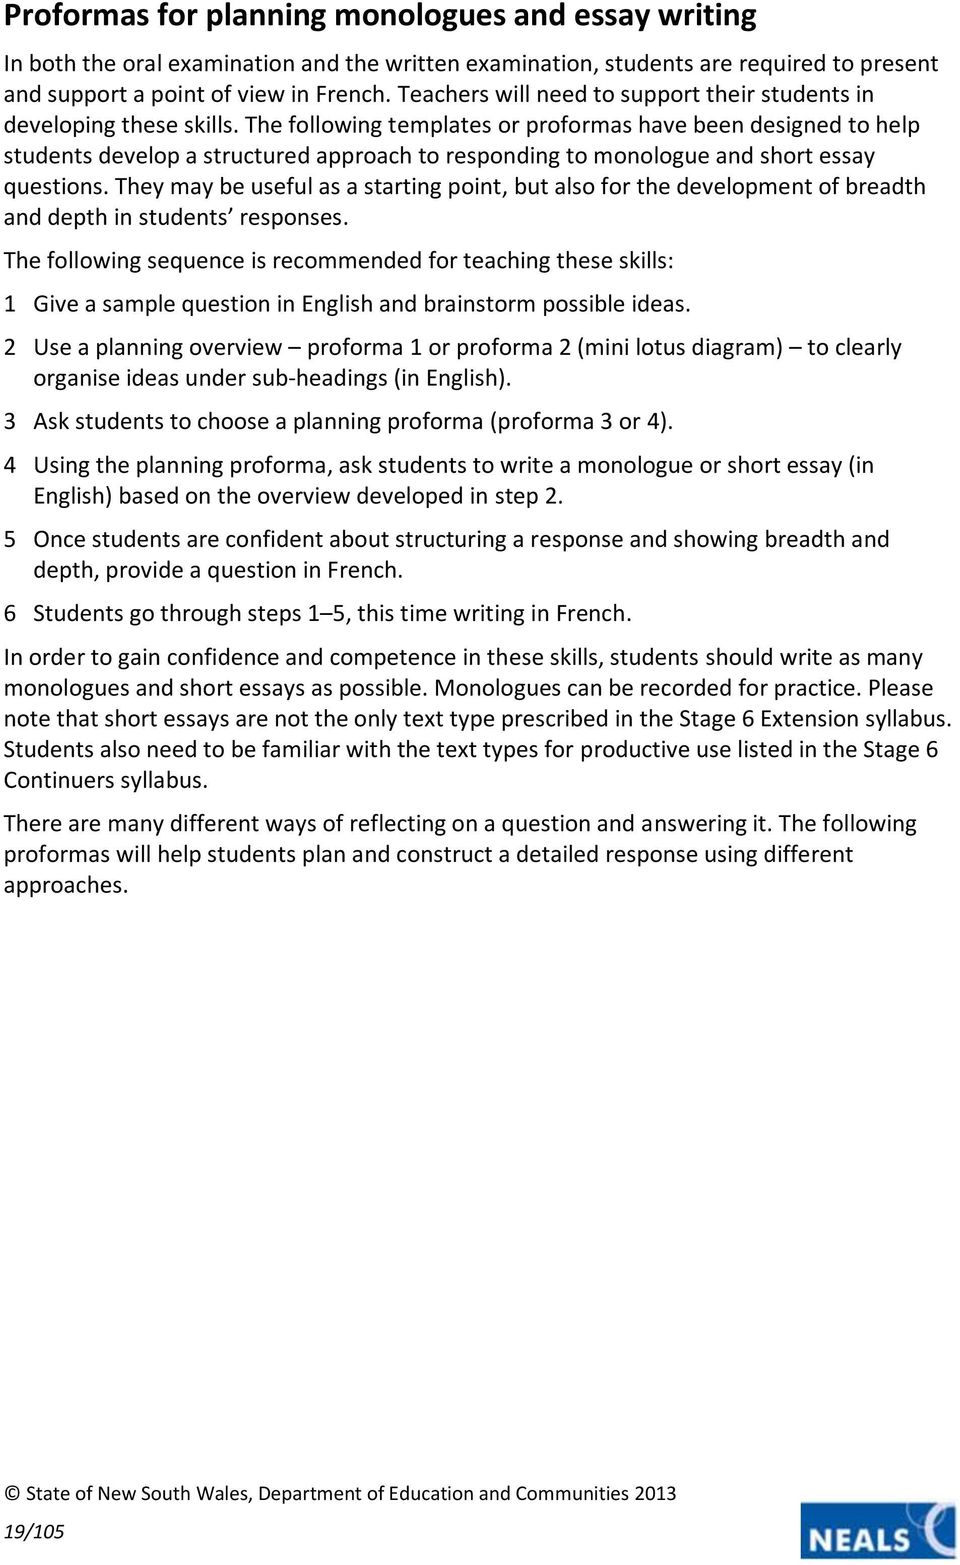 french extension contents support materials hsc stage  the following templates or proformas have been designed to help students develop a structured approach to